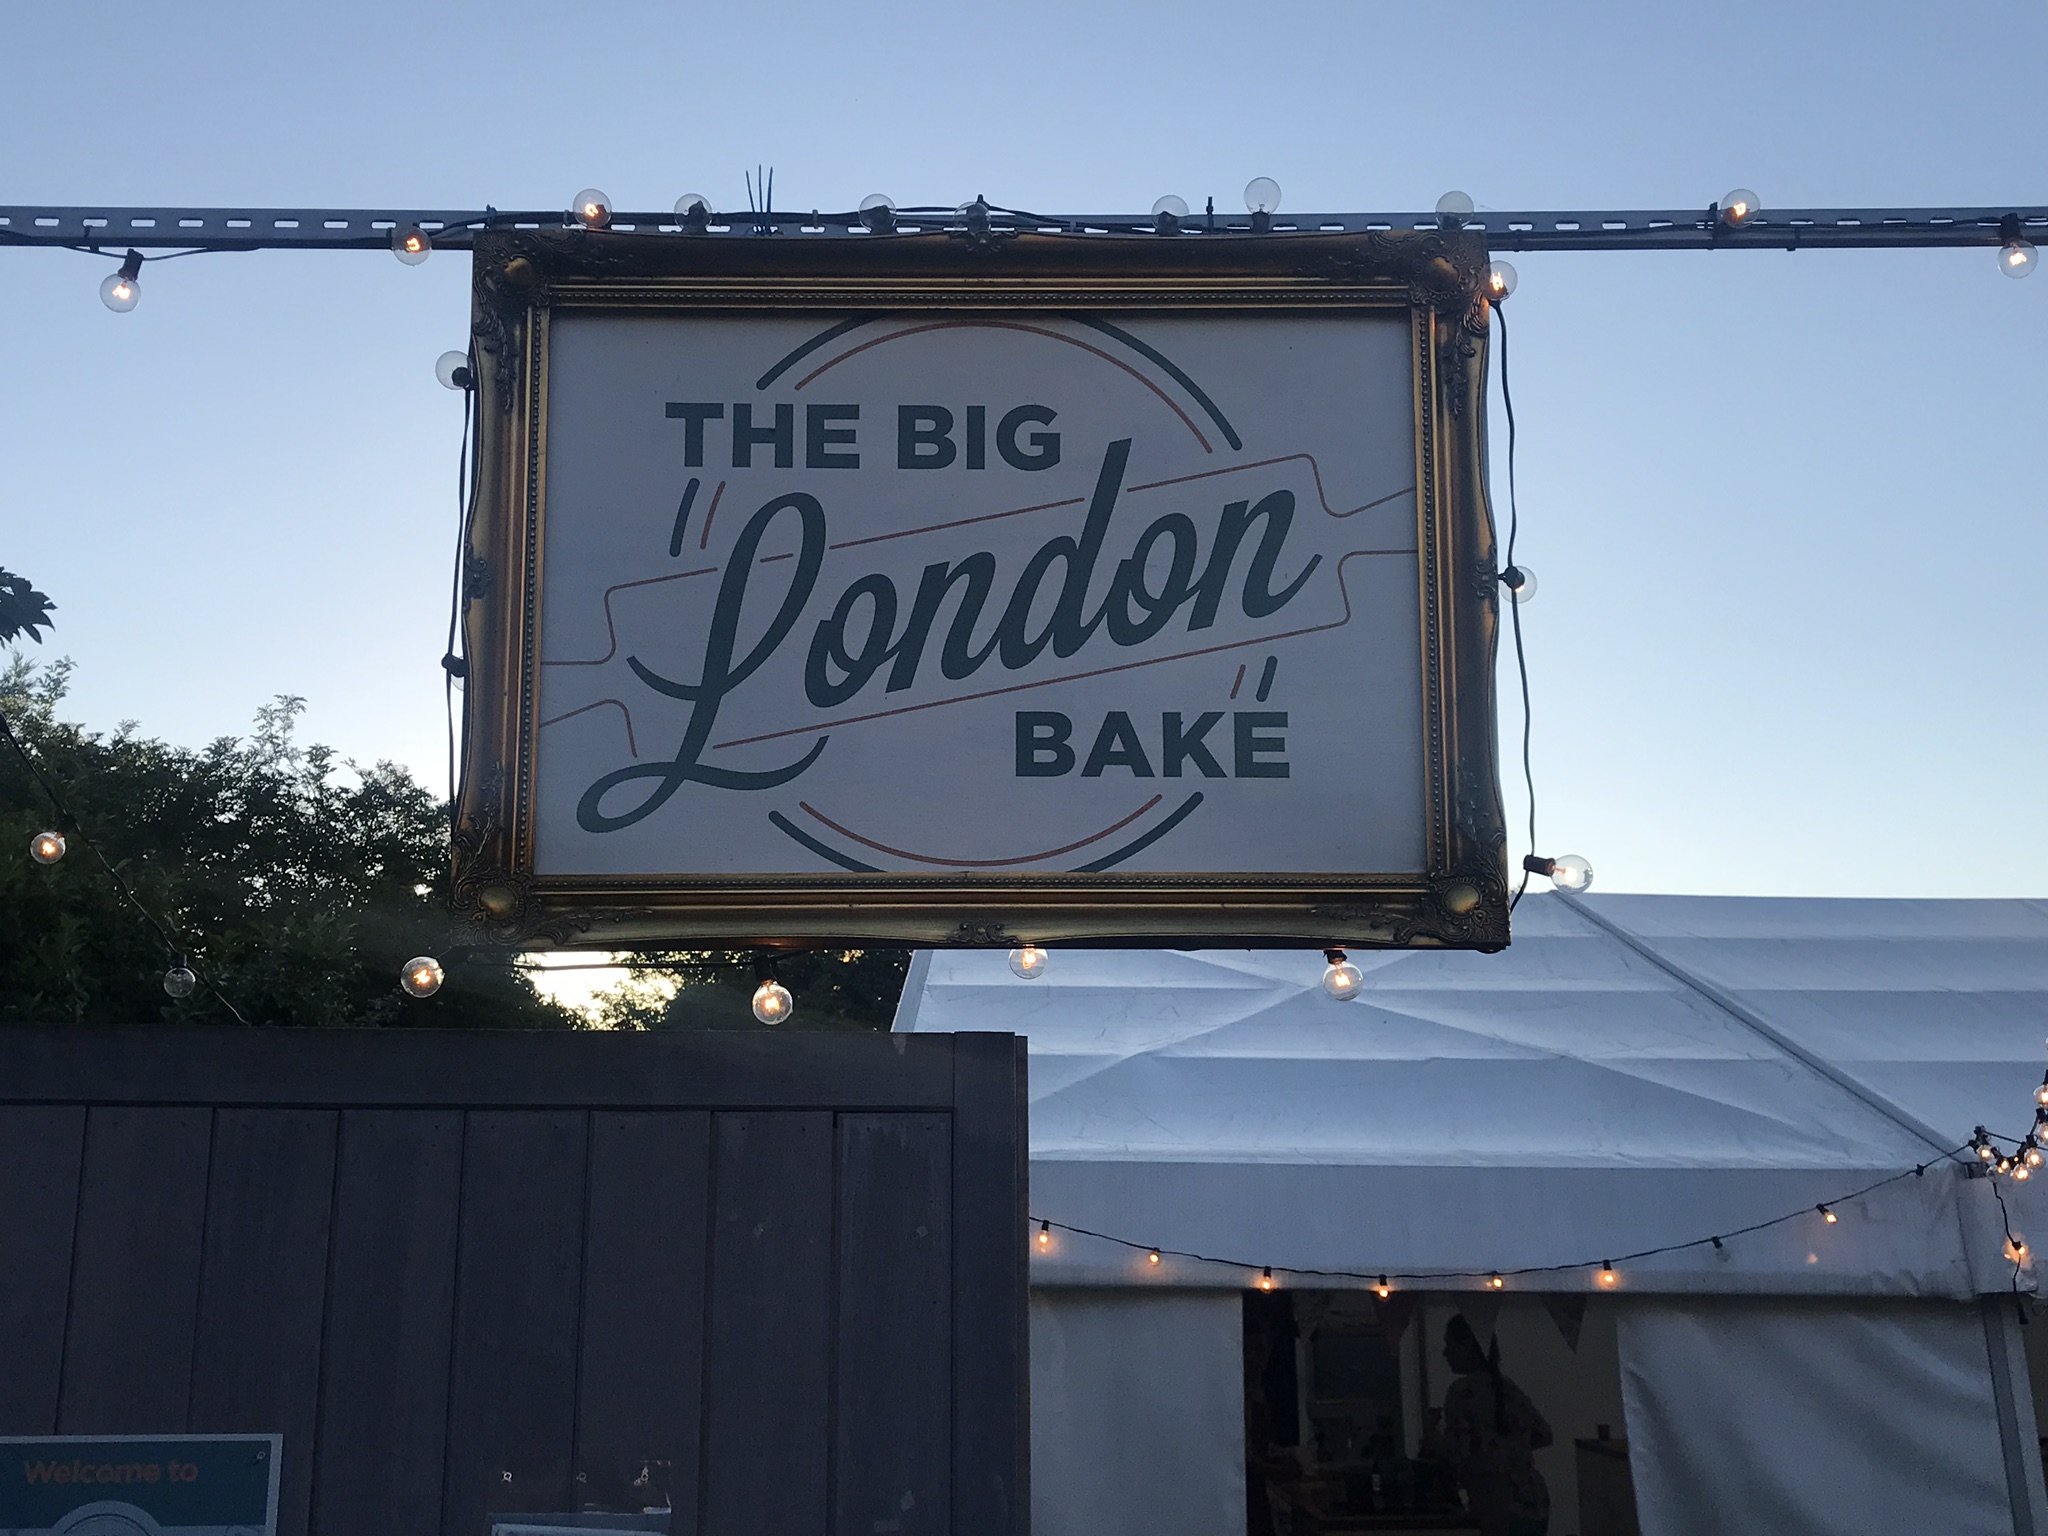 The Big London Bake